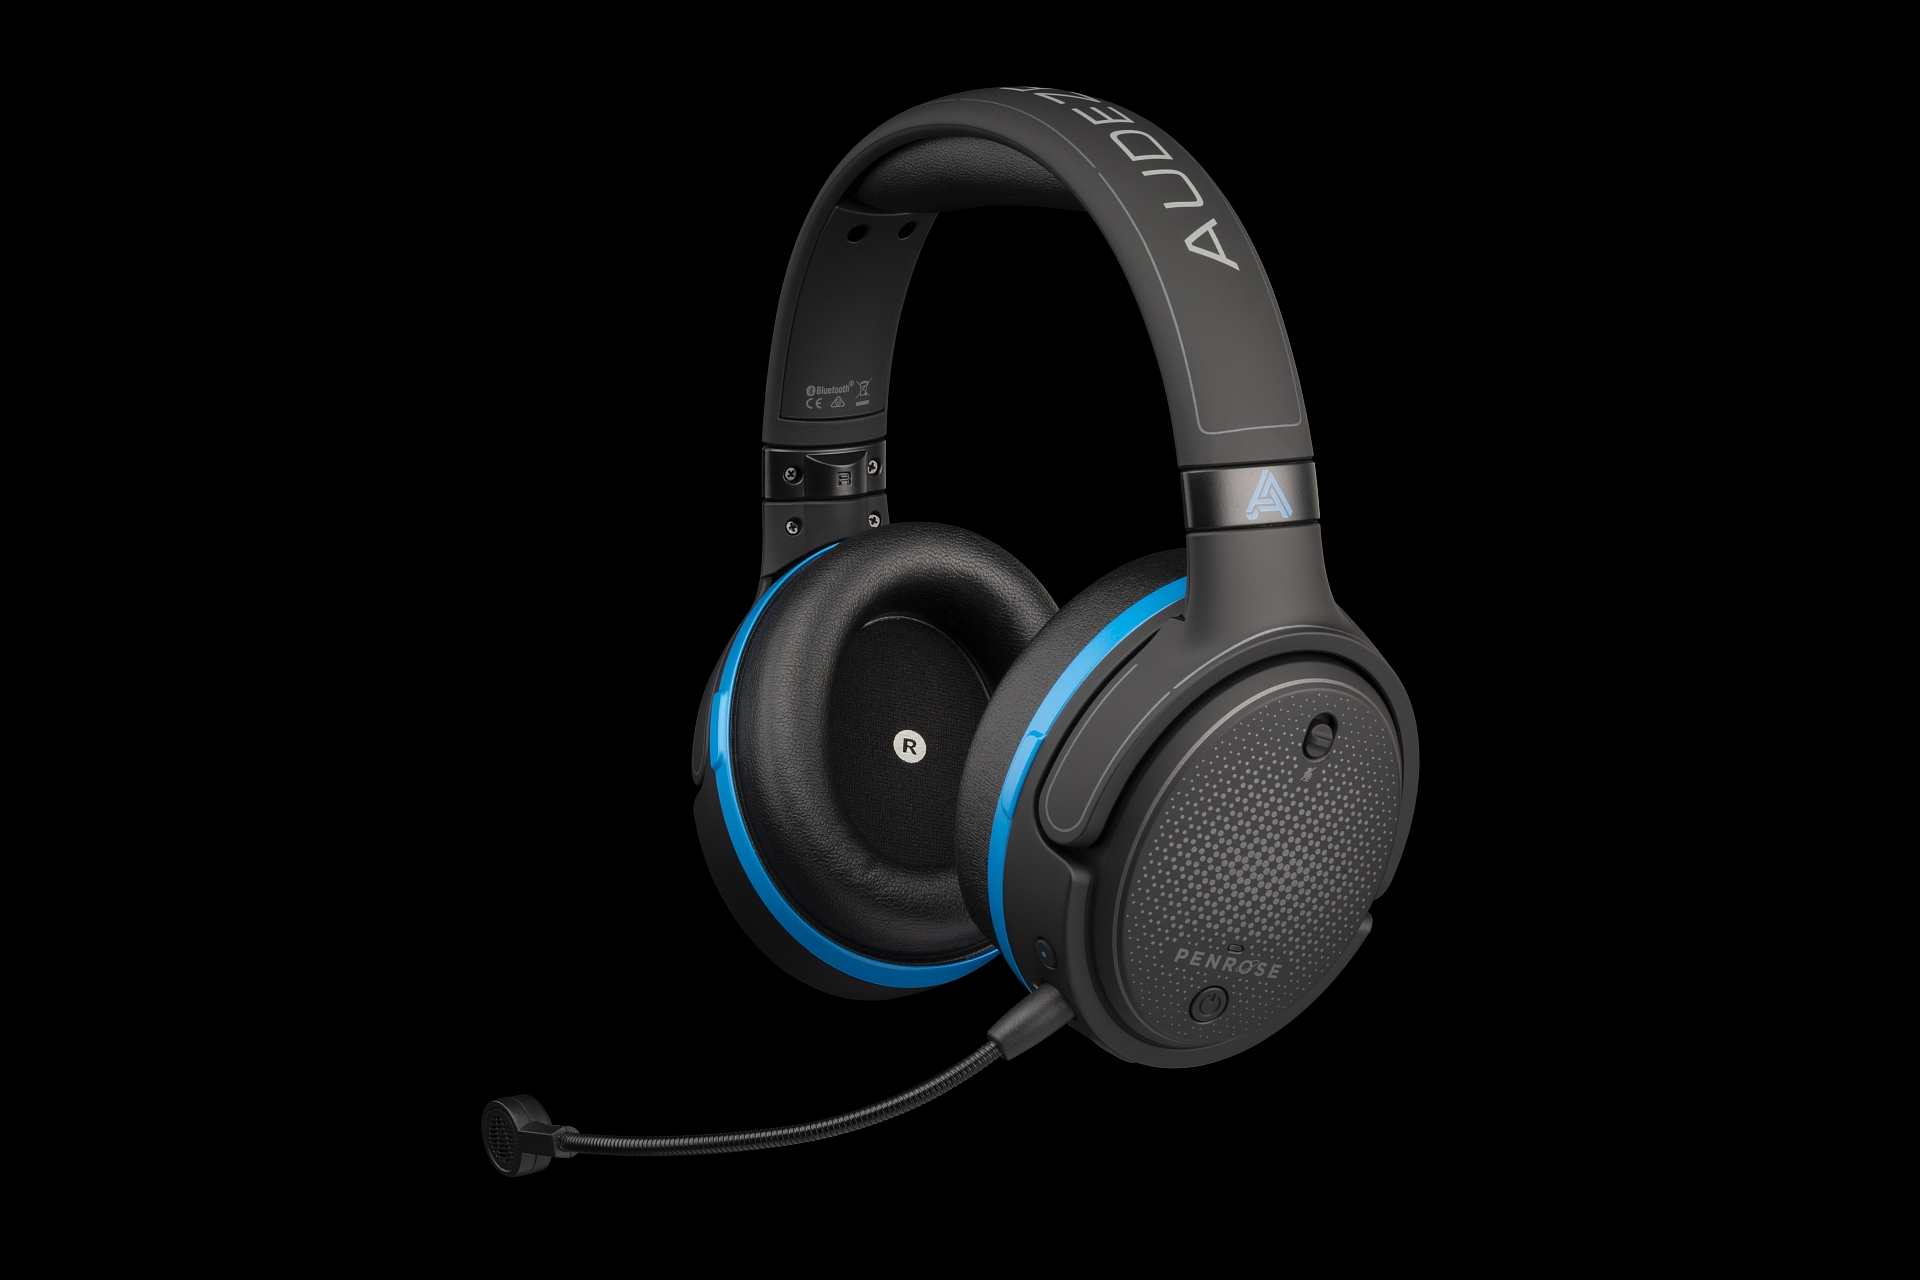 AUDEZE PENROSE HEADSET NOW AVAILABLE FOR PLAYSTATION 5 AND XBOX SERIES X|S